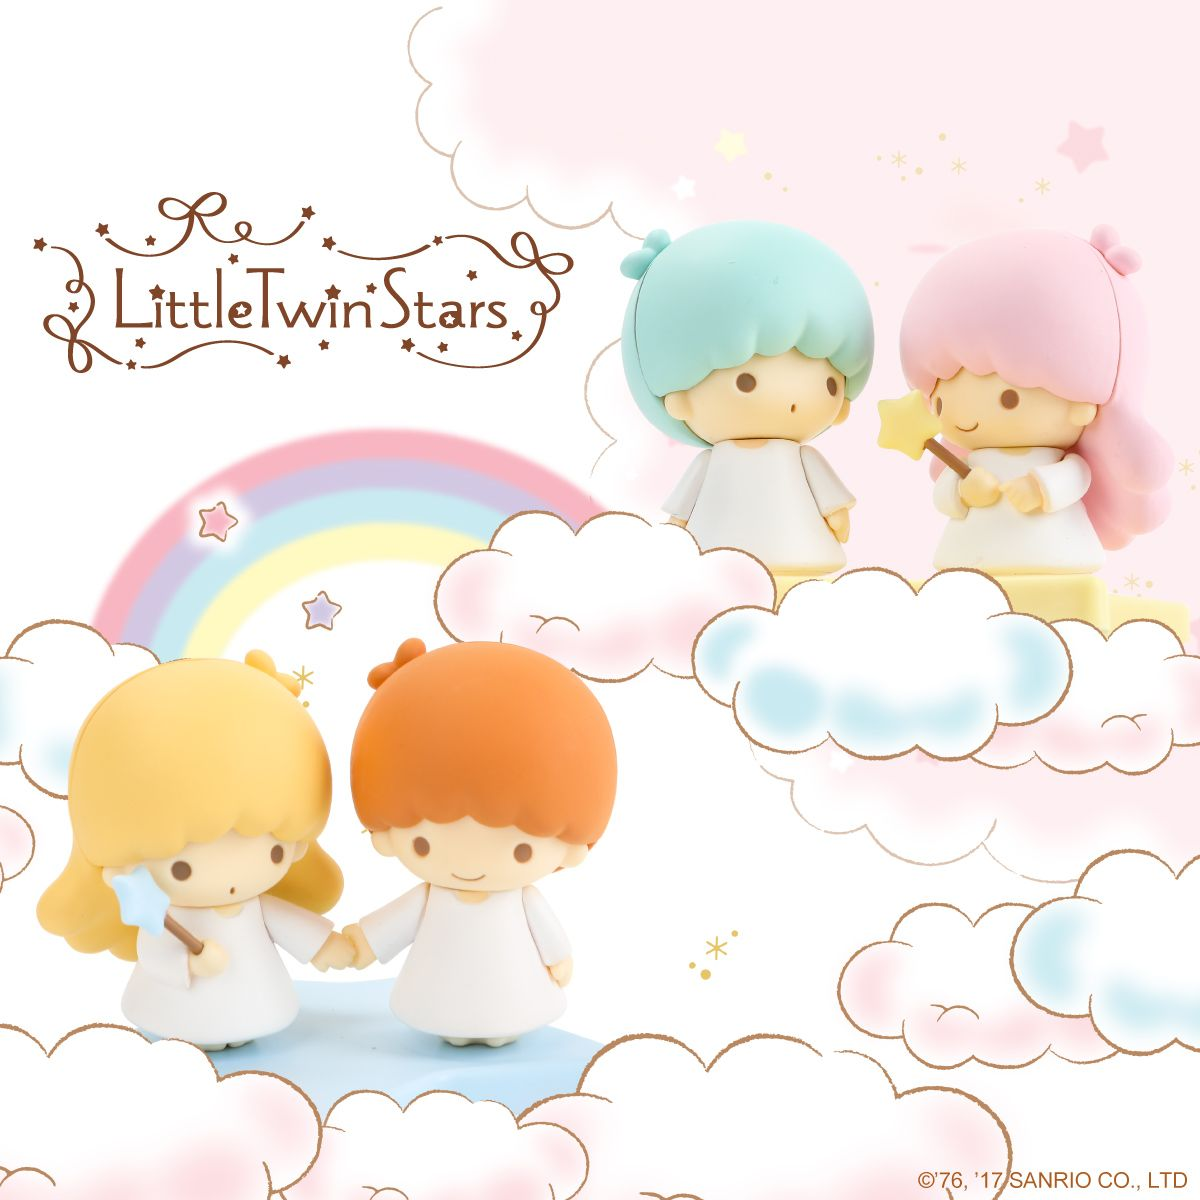 9667f1394 Little Twin Stars. Your Wish Came True! New collectible figurines of Kiki  and Lala are now here!